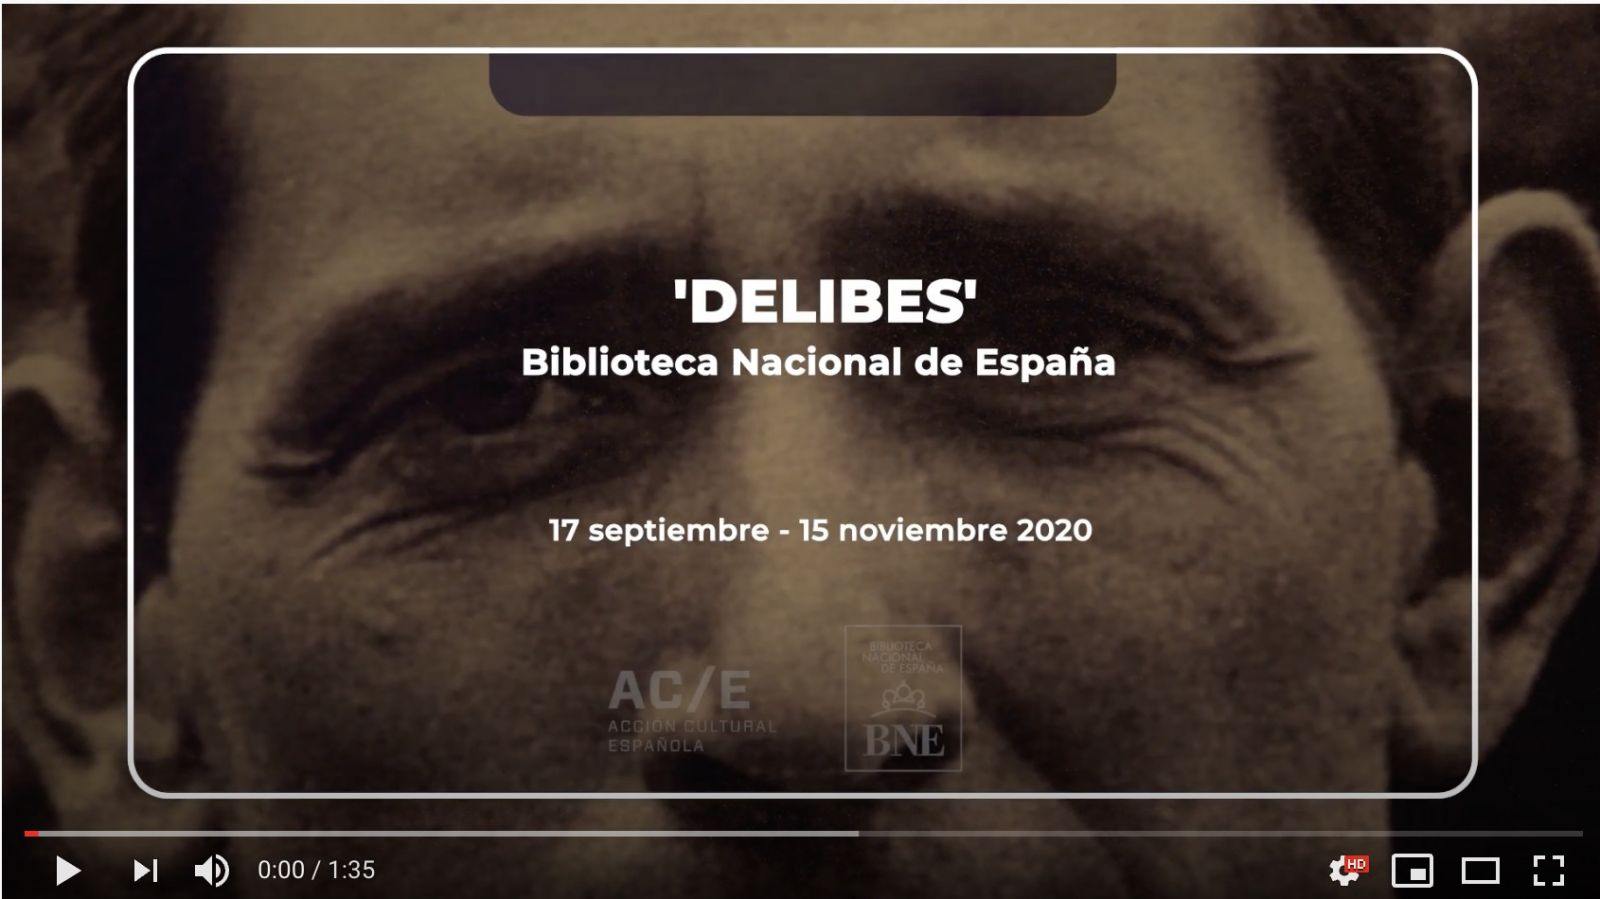 Delibes, the exhibition.